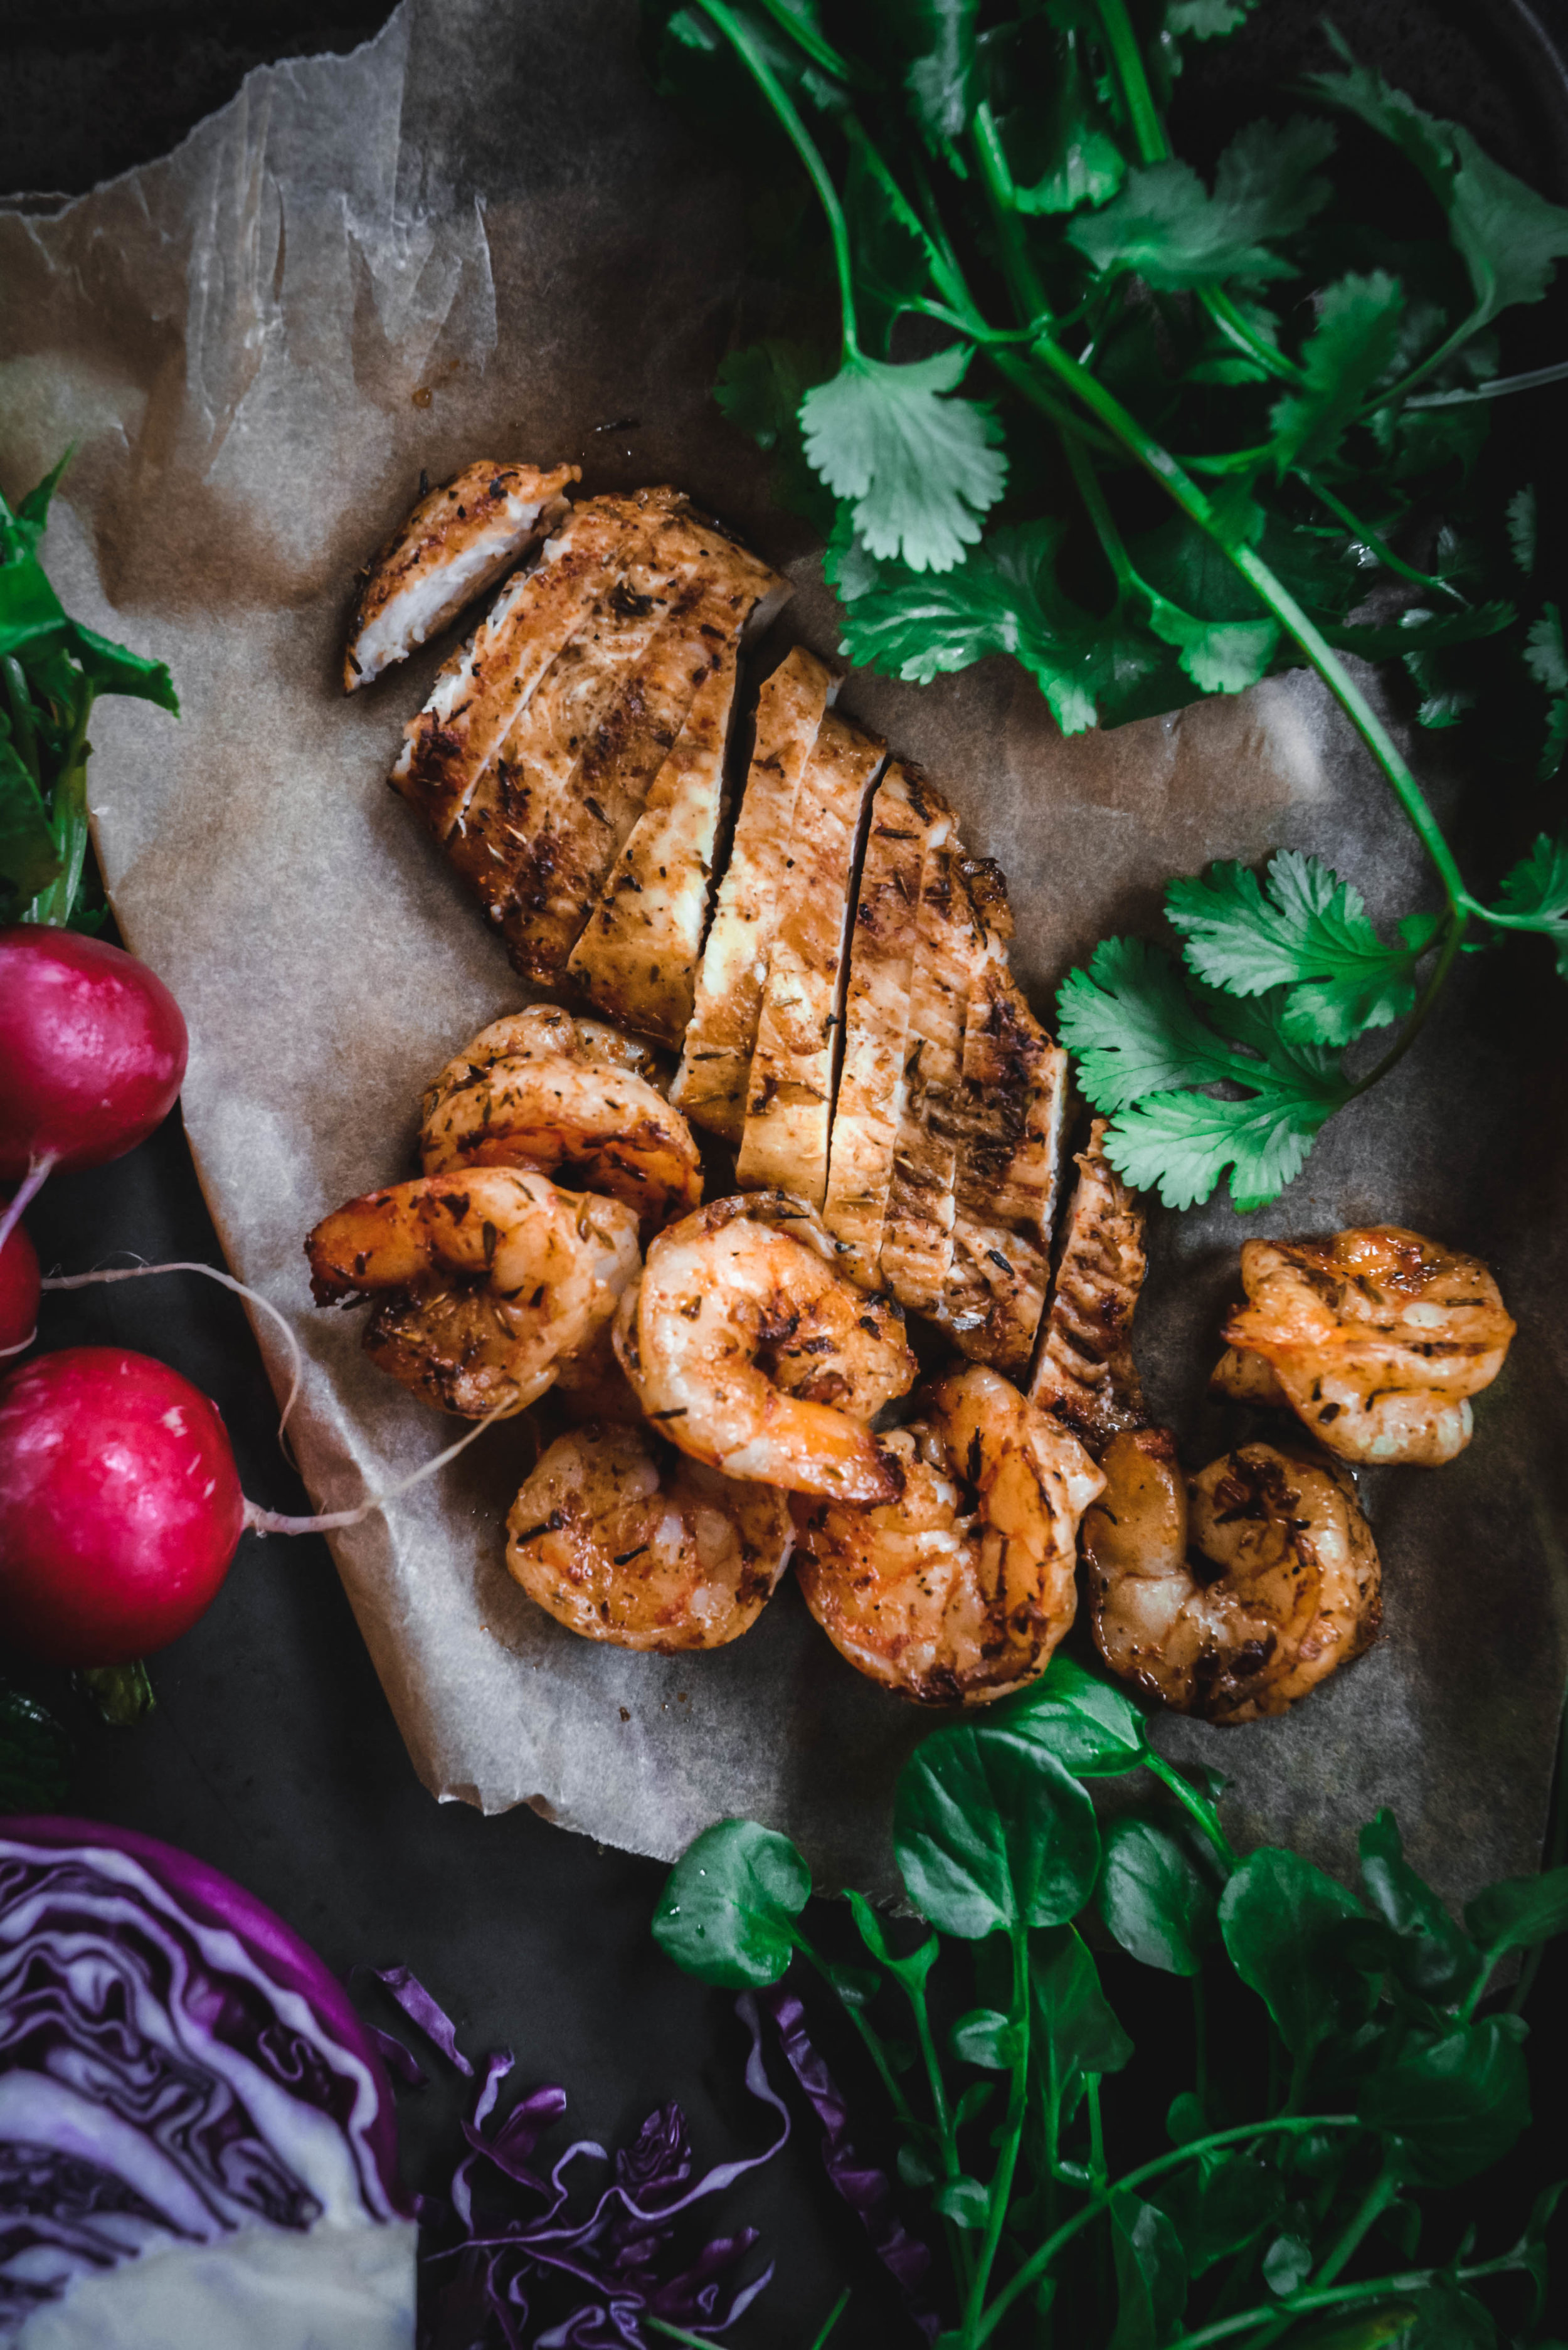 Jerk chicken and shrimp on tray with greens